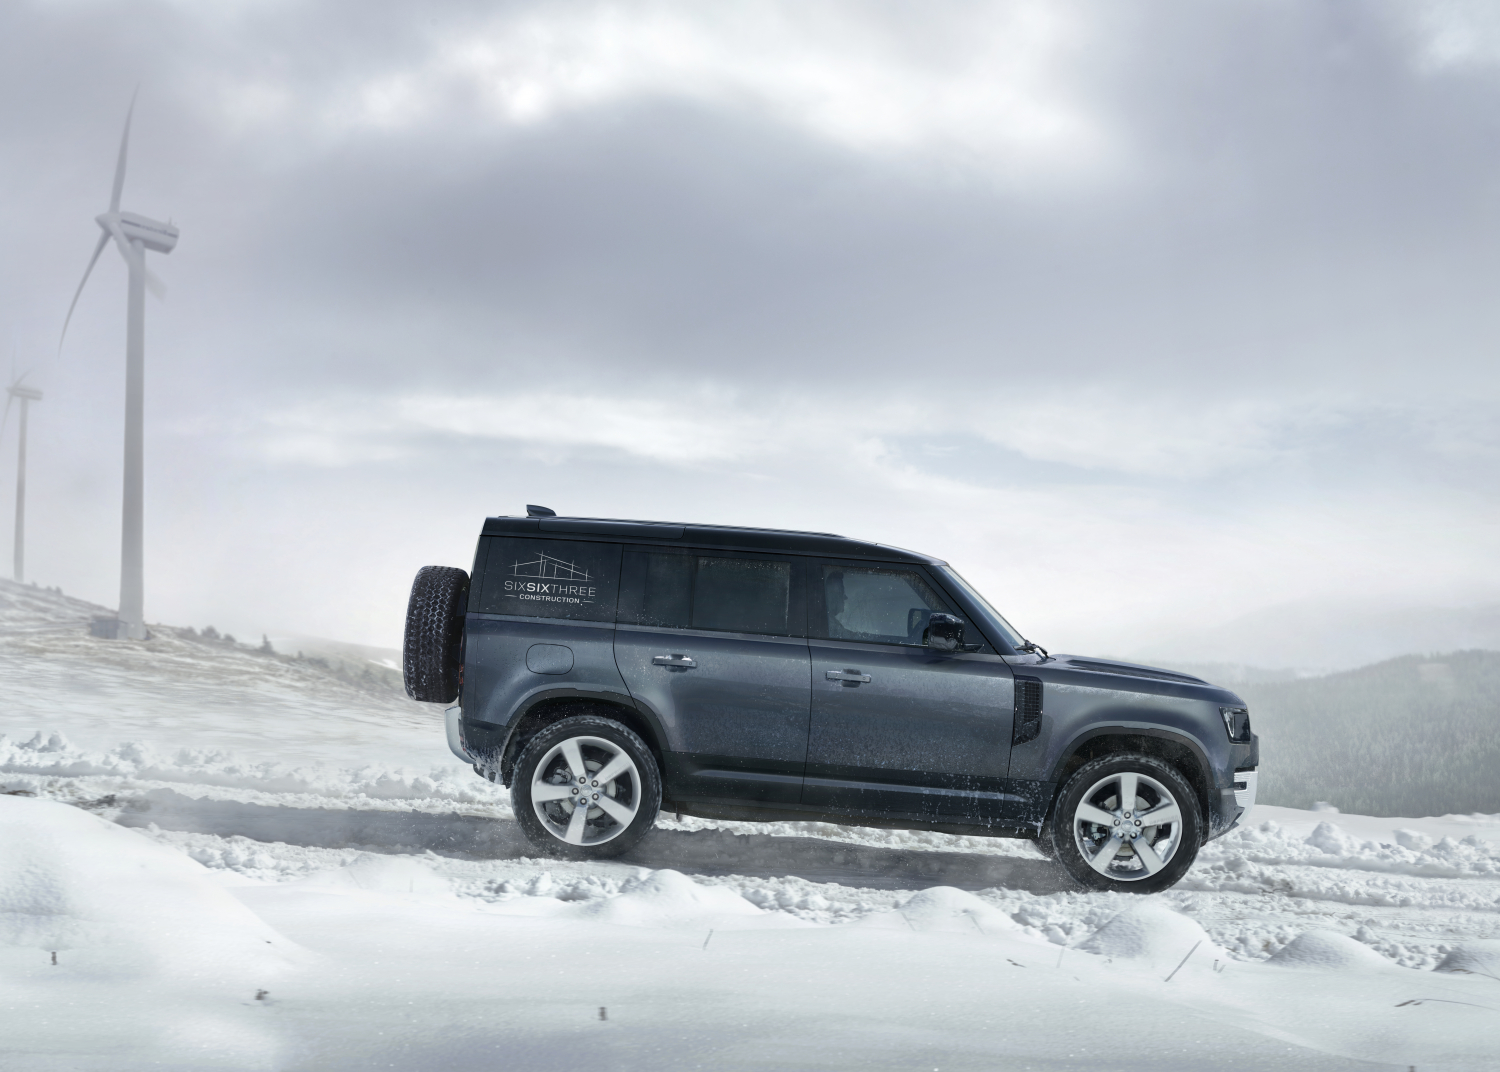 Land Rover Defender Hard Top: most Rugged and Durable Commercial Vehicle on Sale now - Image 2